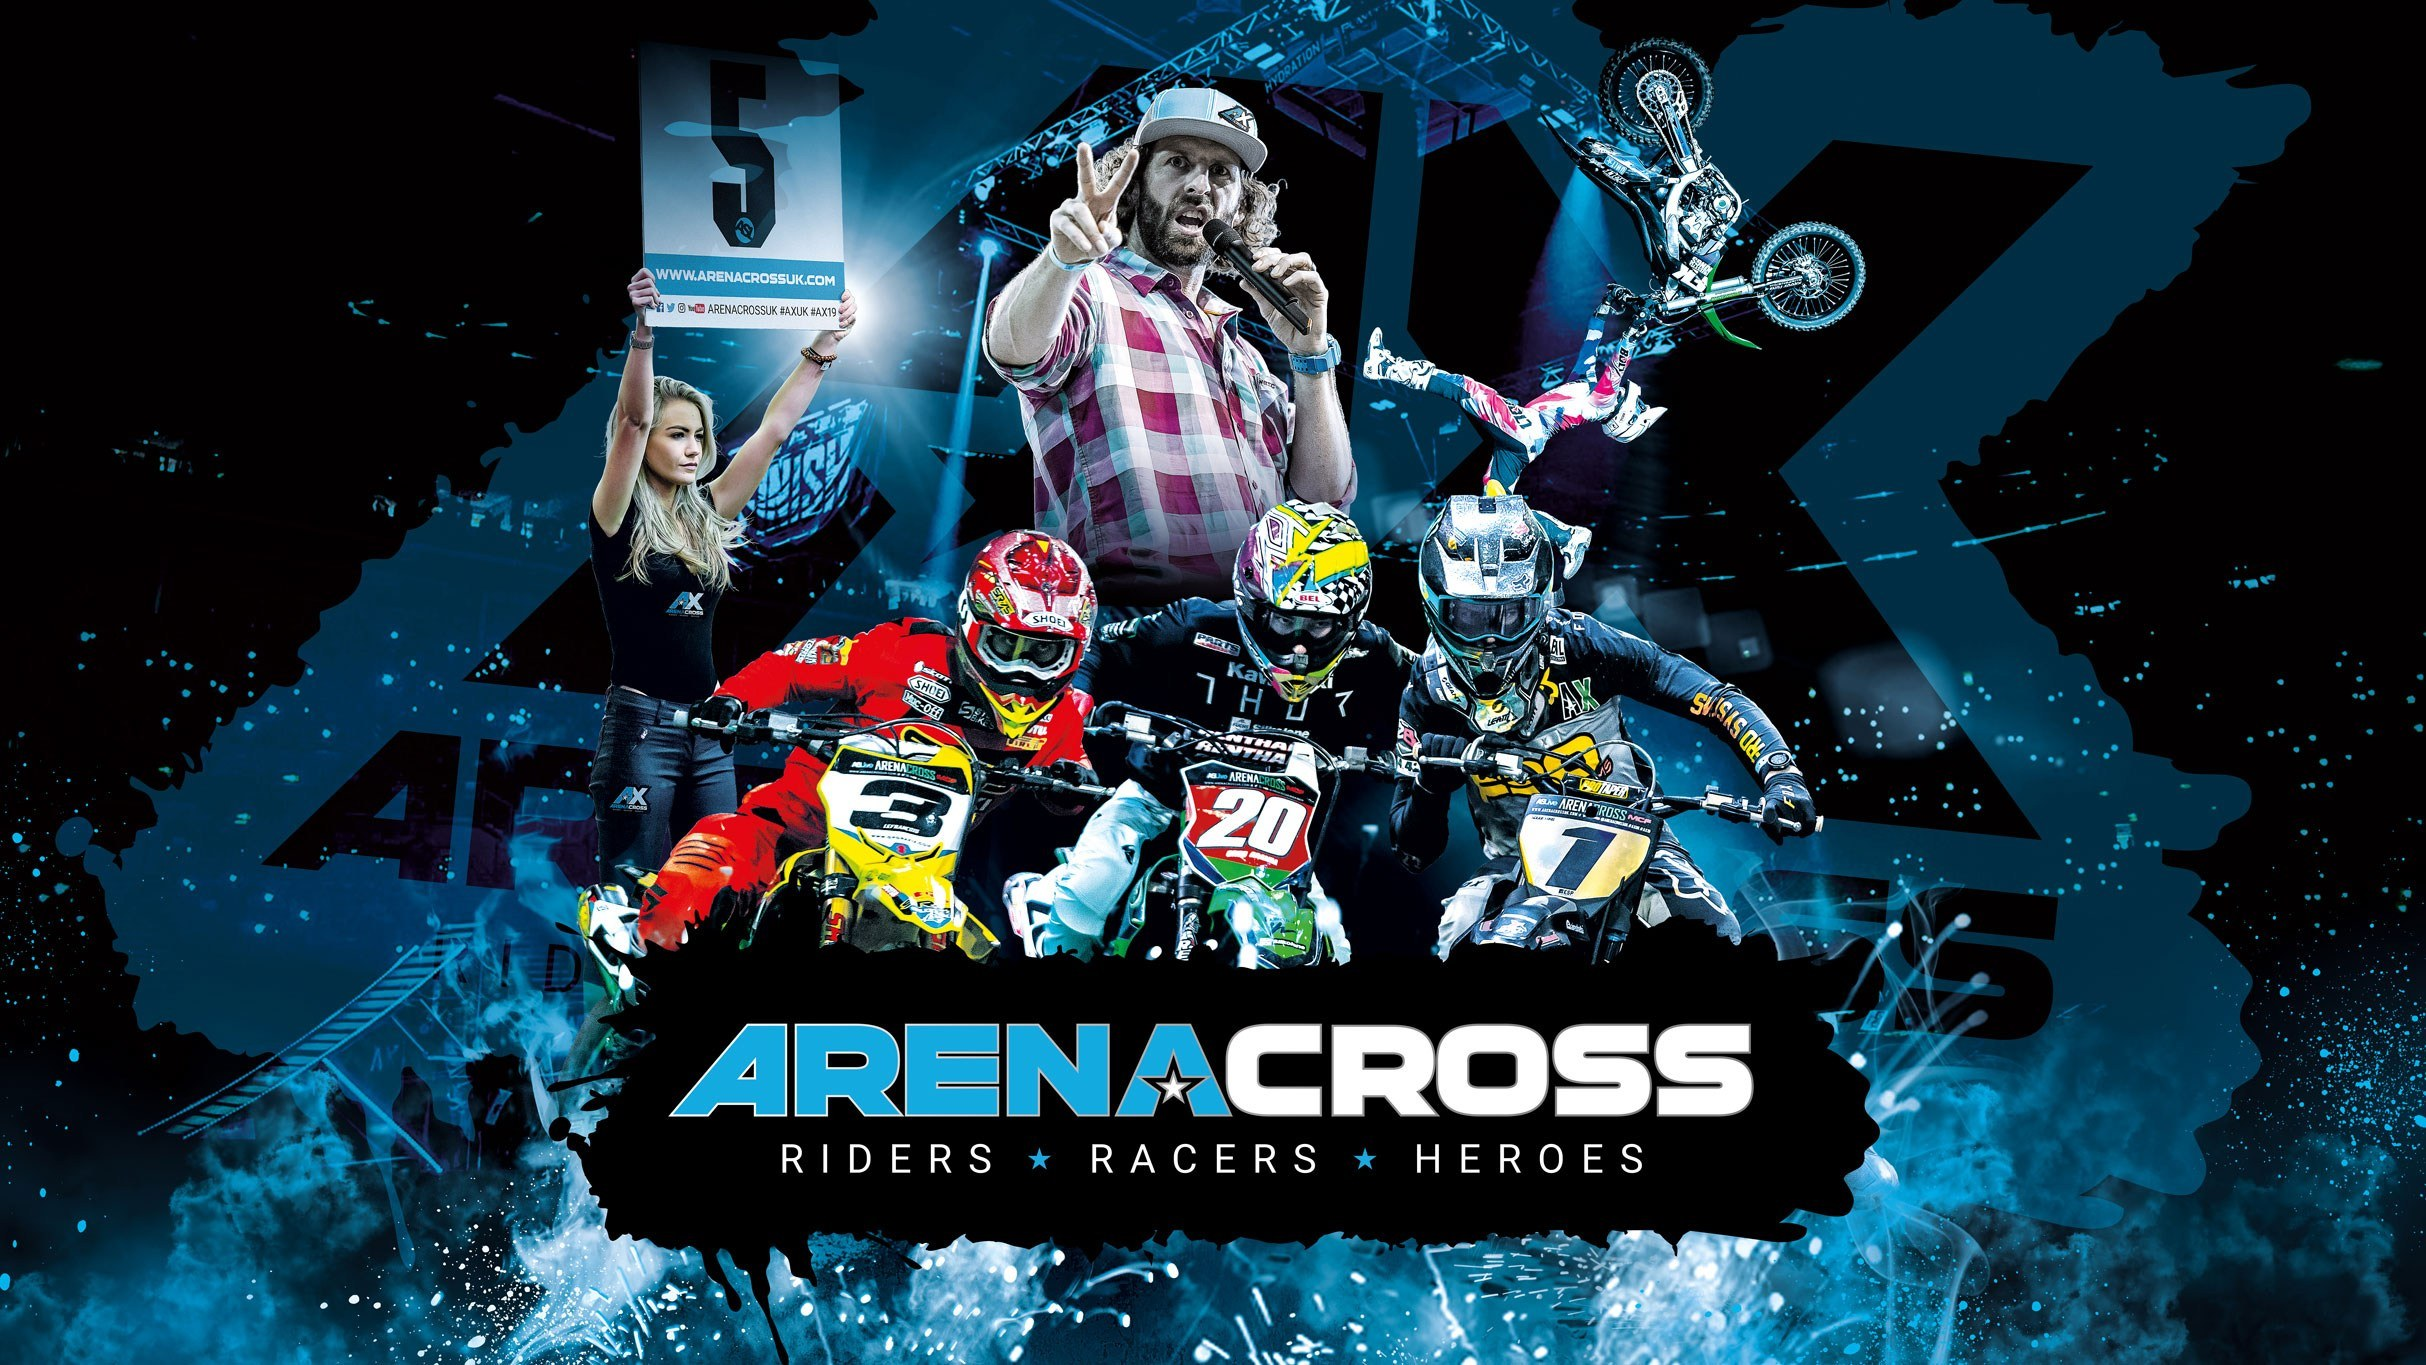 The Arenacross Tour 2020